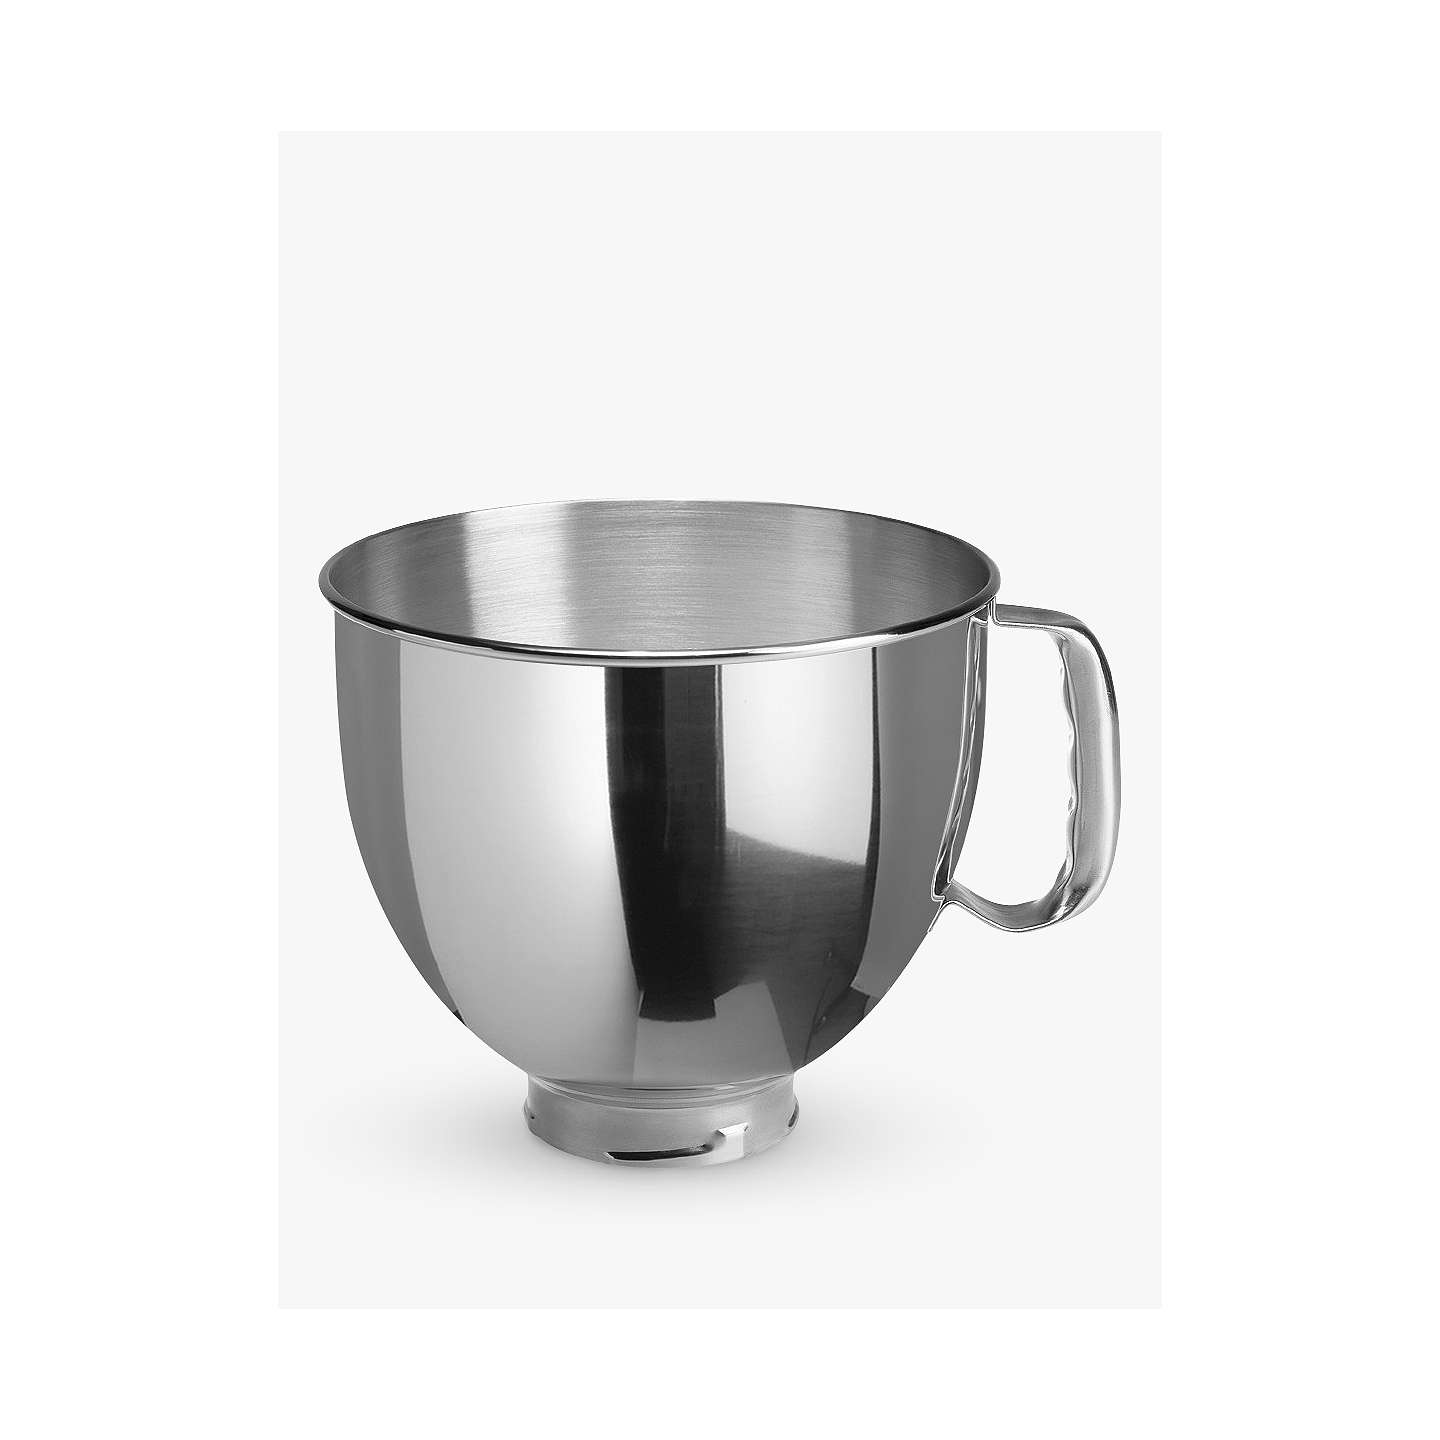 KitchenAid 4.83L Stainless Steel Bowl for Stand Mixer at John Lewis